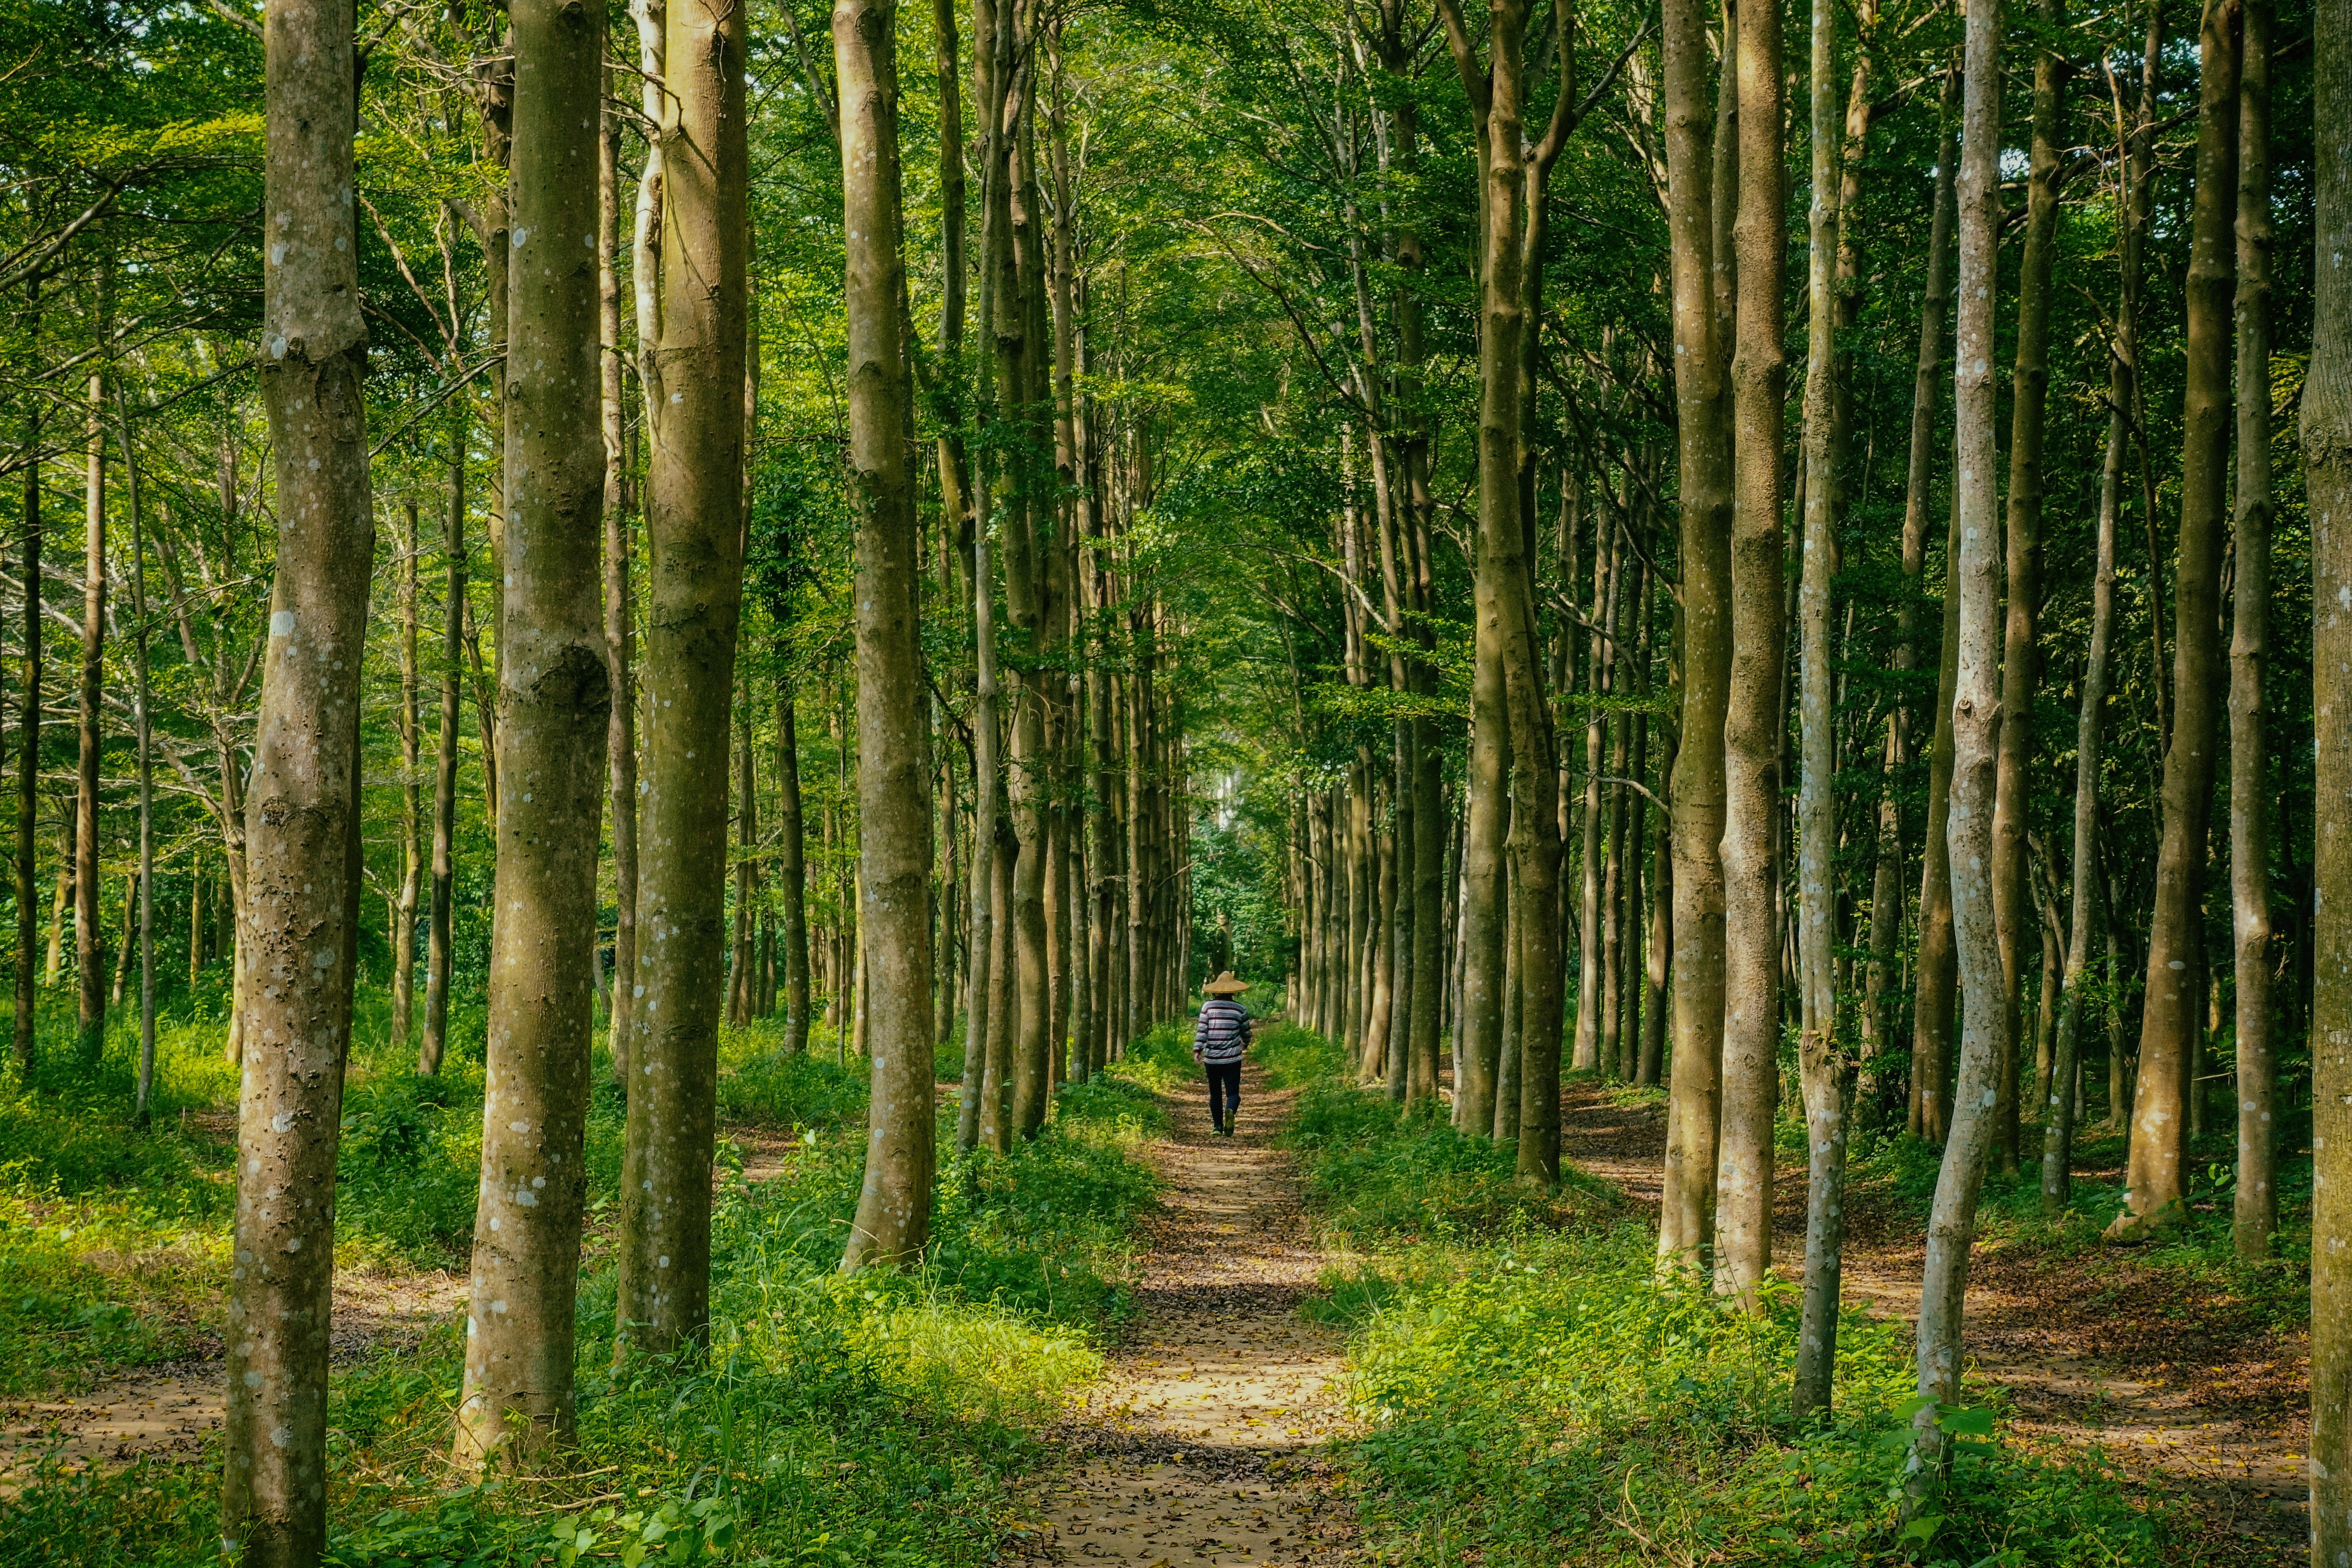 person walking on pathway inside the forest